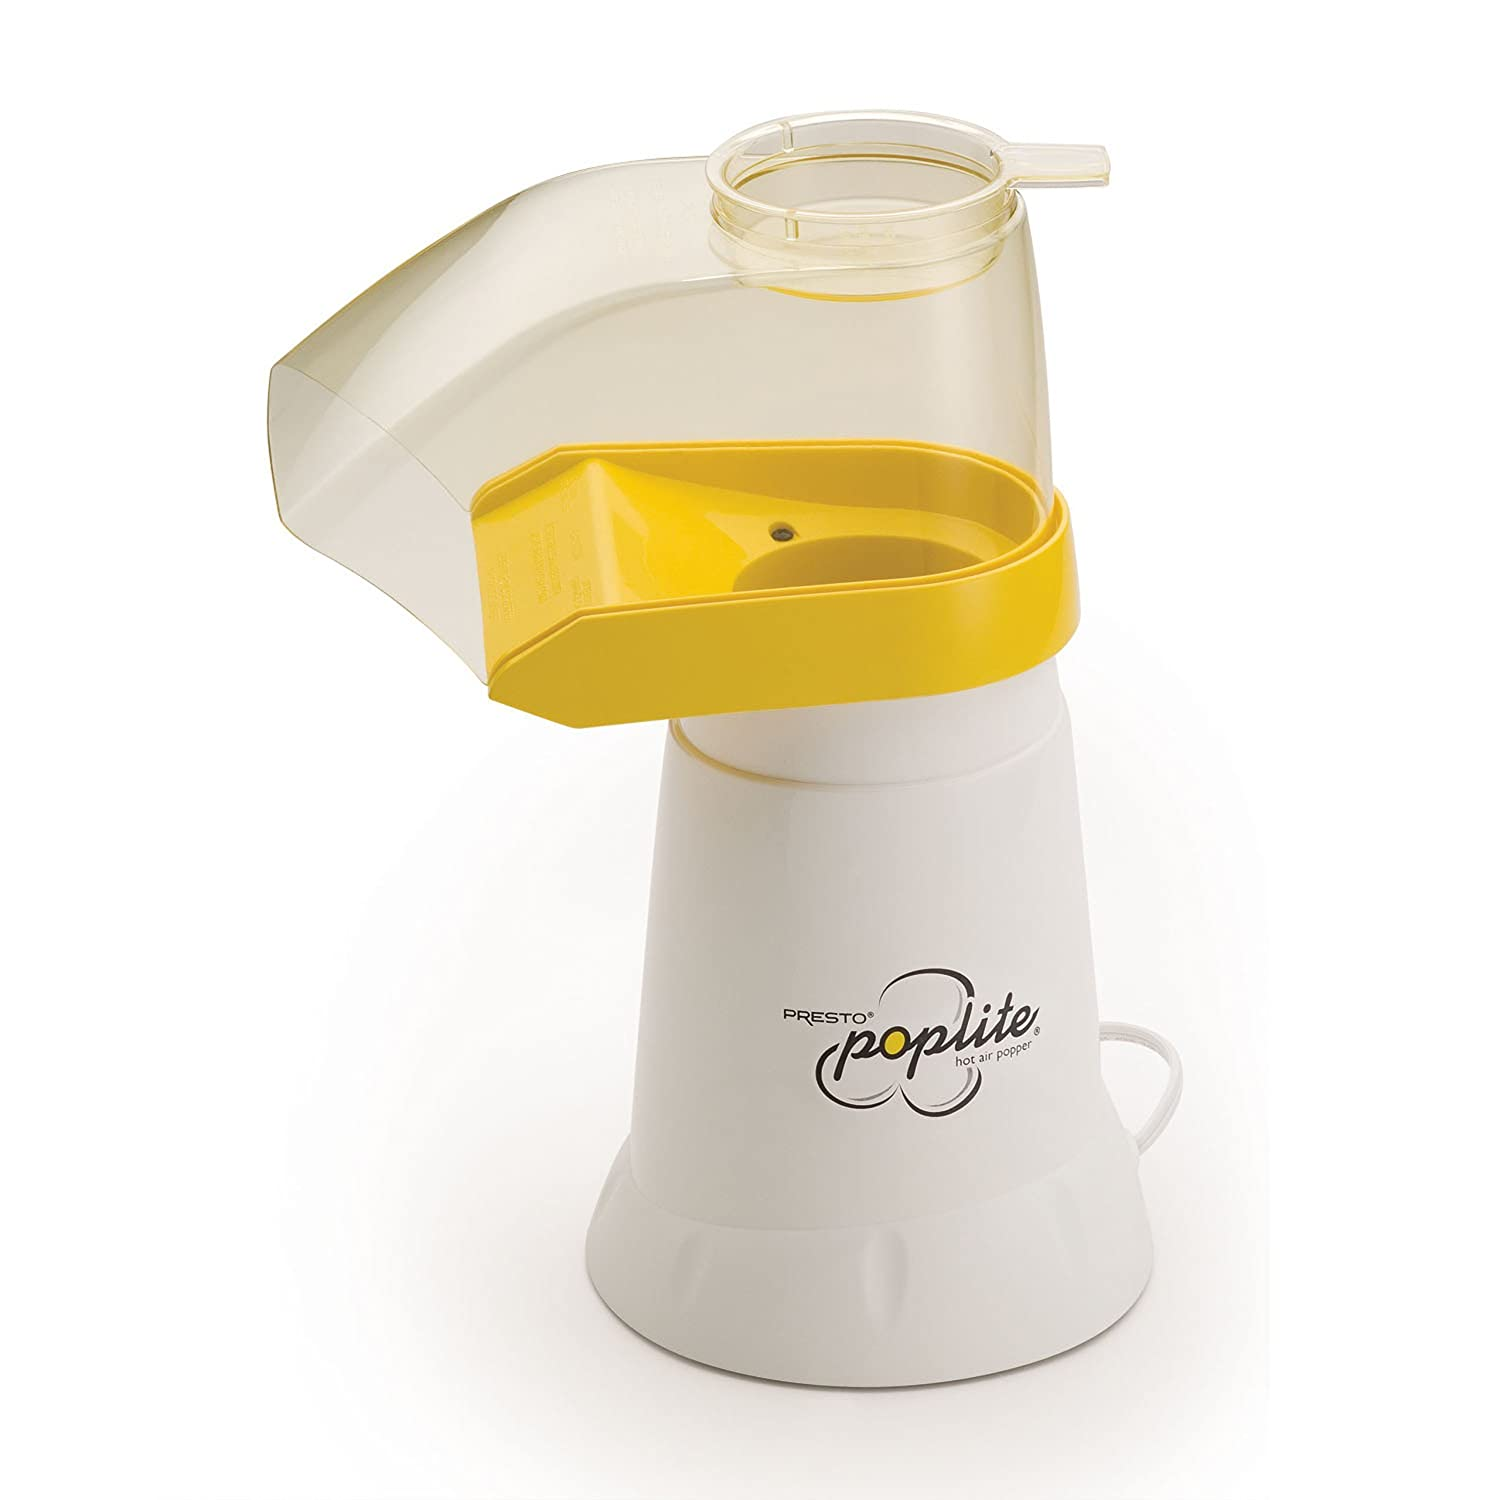 Presto 04820 PopLite Hot Air Popper, White $19.88